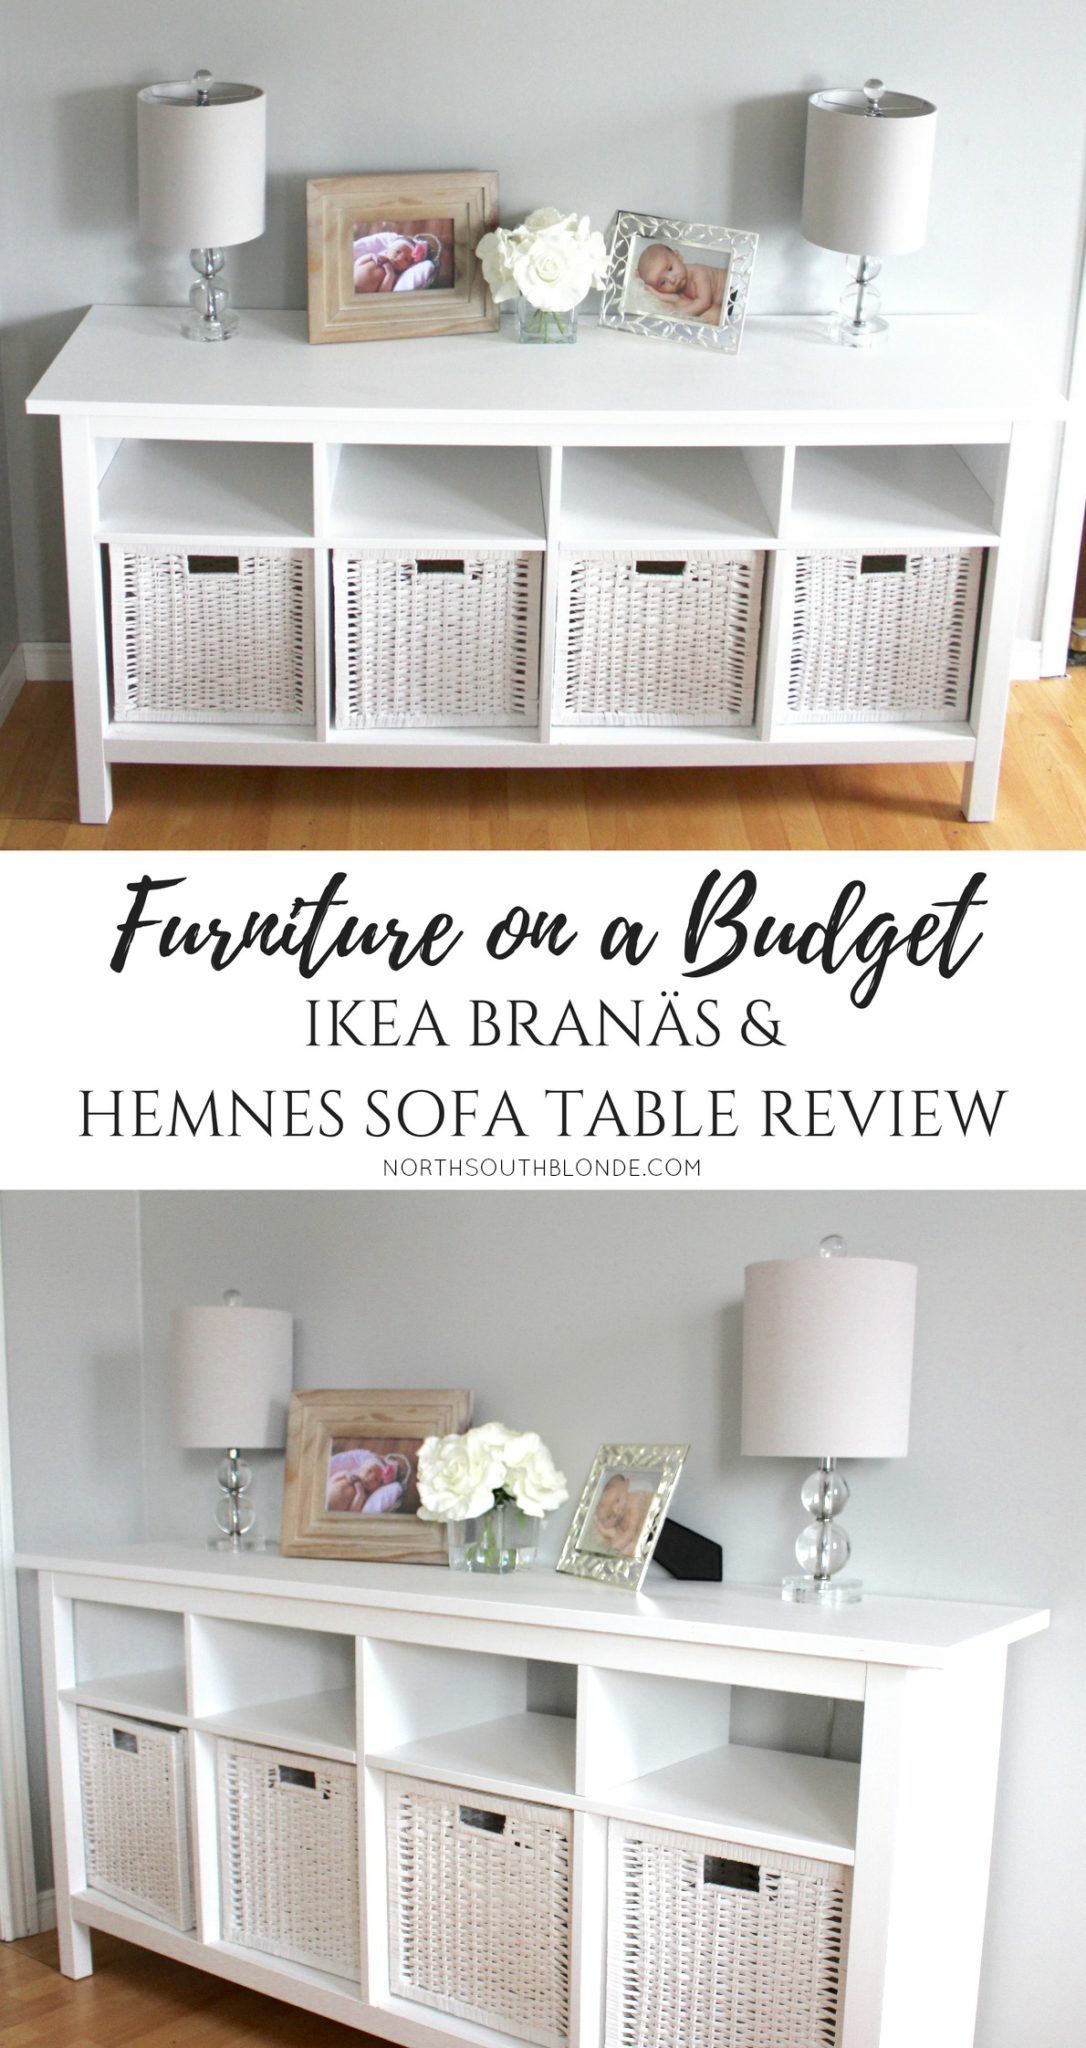 The Hemnes Sofa Table from Ikea is an affordable, beautiful and timeless white piece of furniture that can serve multiple purposes in your home! Buffet Table | Sideboard | Console Table | Media Table | TV Stand | Home Decor | Furniture | Affordable | Ikea Hemnes Console Table | Sofa Table | Branas Baskets | Entryway | Mudroom | Toy Storage | Toy Room Organization | Ikea Review | Dimensions | Basket Size | Measurements | Family Friendly | Mom Approved | Home design | Decor Accents | Side Table |